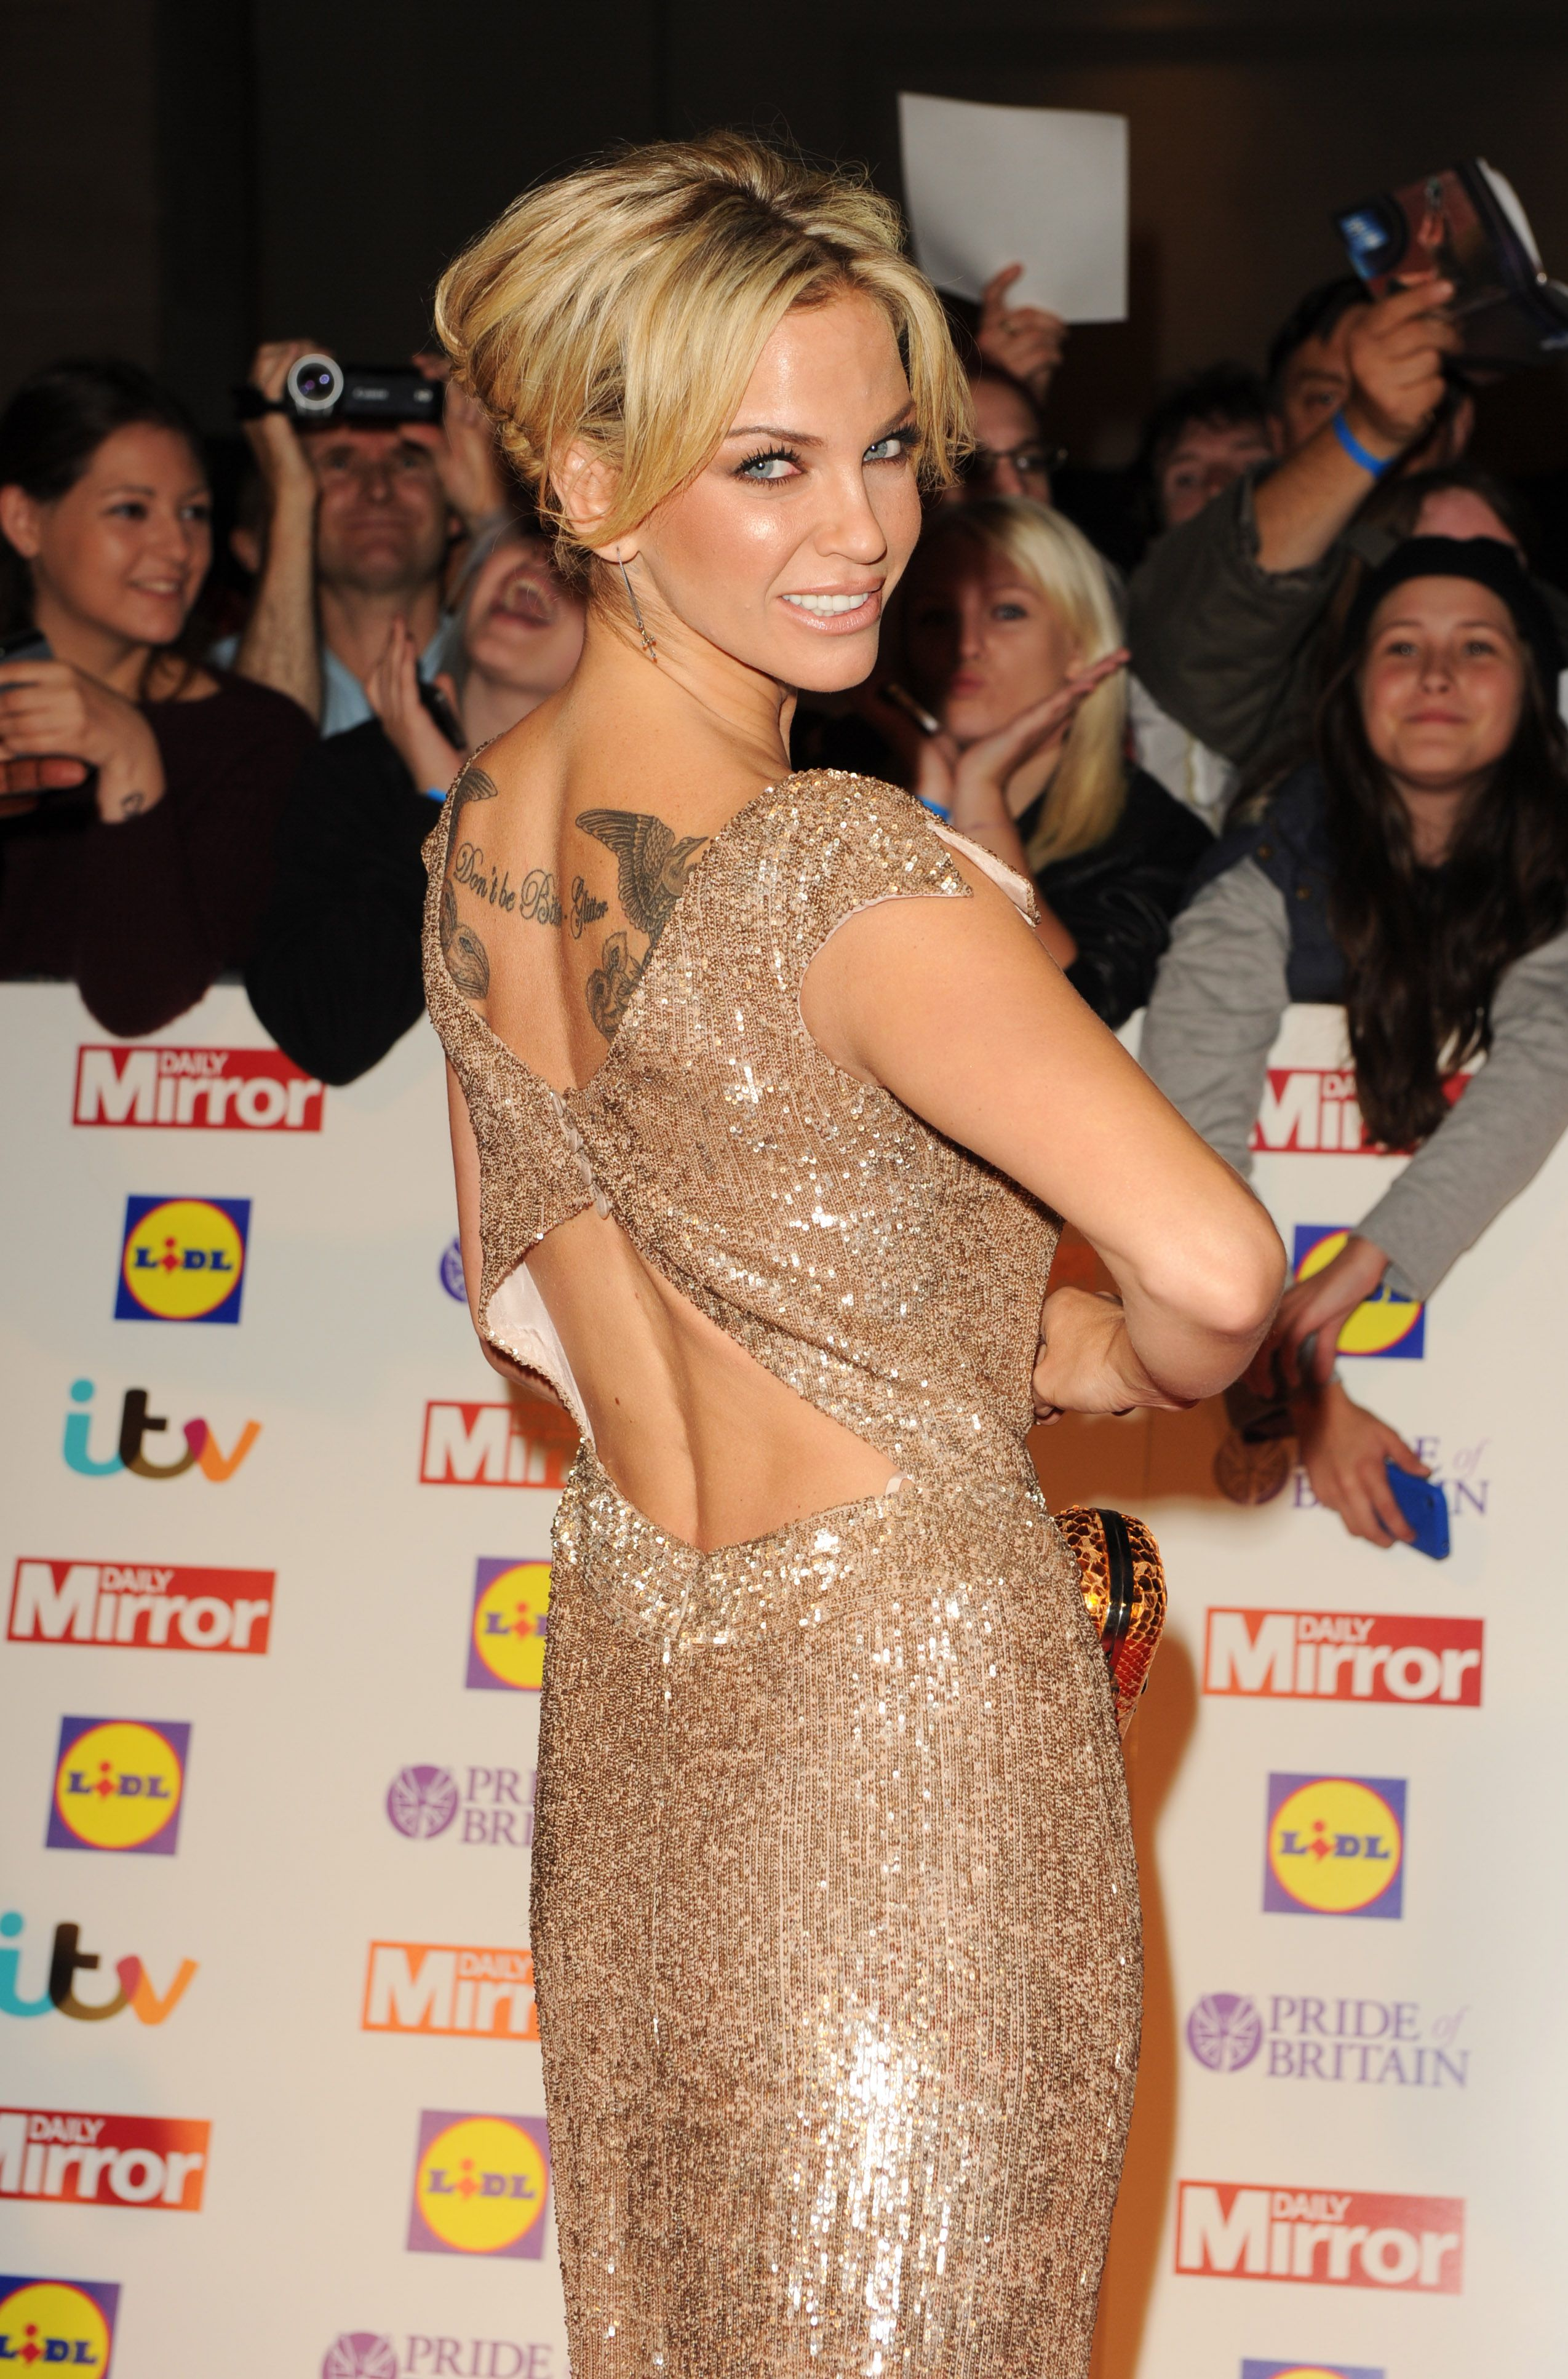 18Sarah Harding has revealed some positive news about her cancer treatment. Cute Outfit Sarah Harding From Girls Aloud In The Langston Fashion Tv Cute Outfits Fashion